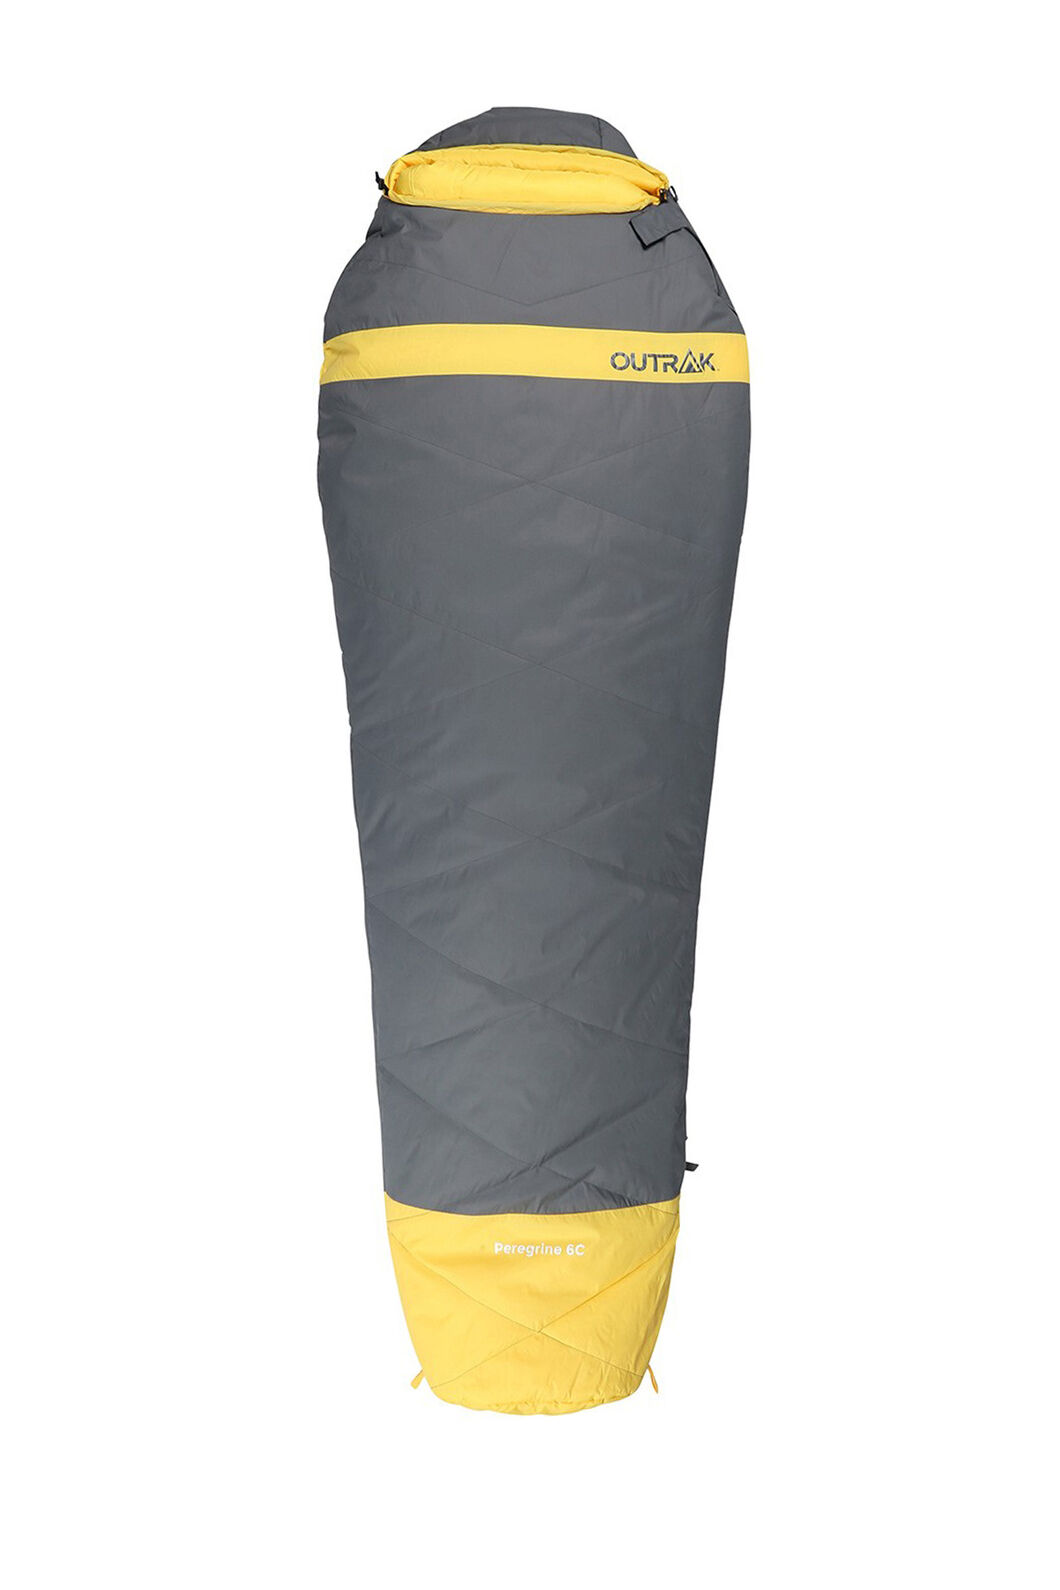 Outrak Peregrine Sleeping Bag 6 Yellow, None, hi-res